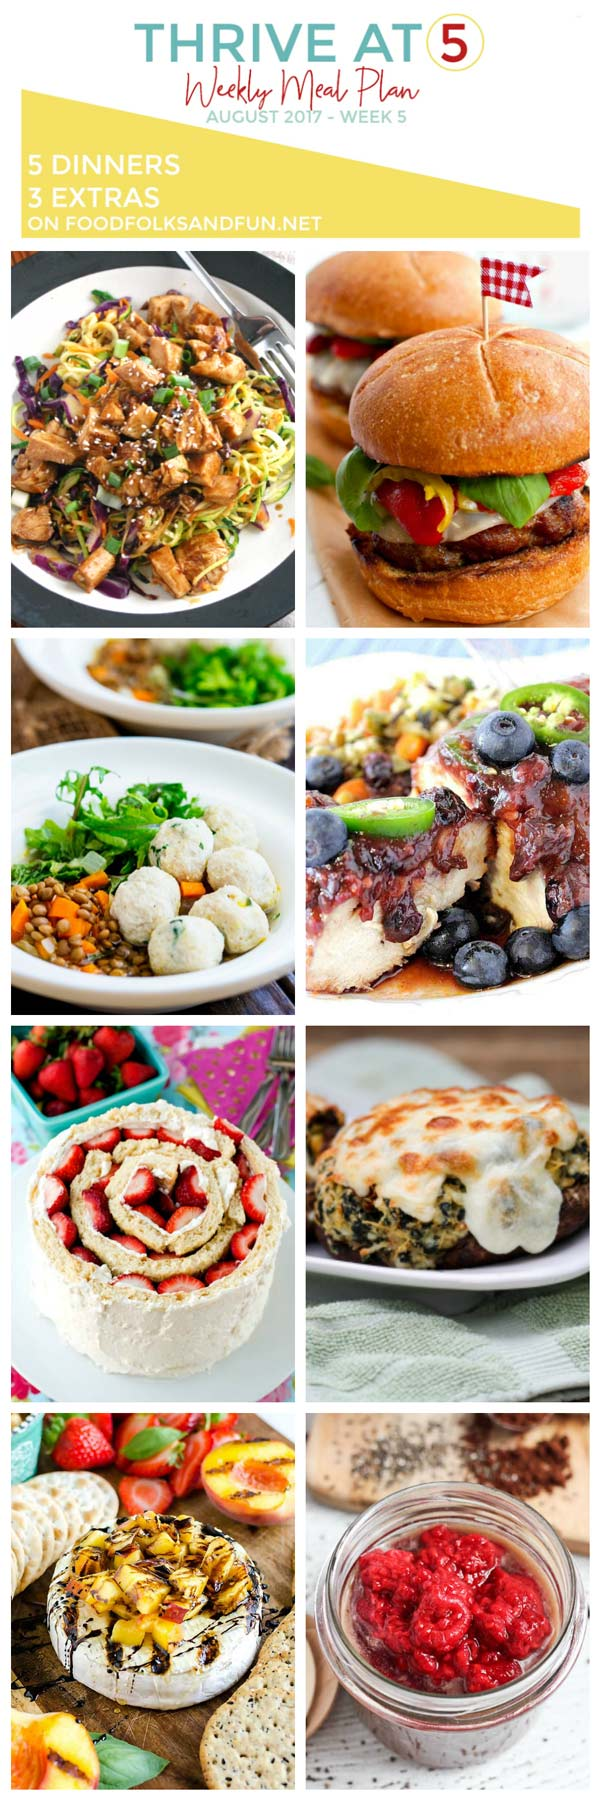 Here's the Weekly Meal Plan for July, Week 5. 5 dinners and 3 extra recipes to make your weekly meal planning a whole lot easier!  via @foodfolksandfun